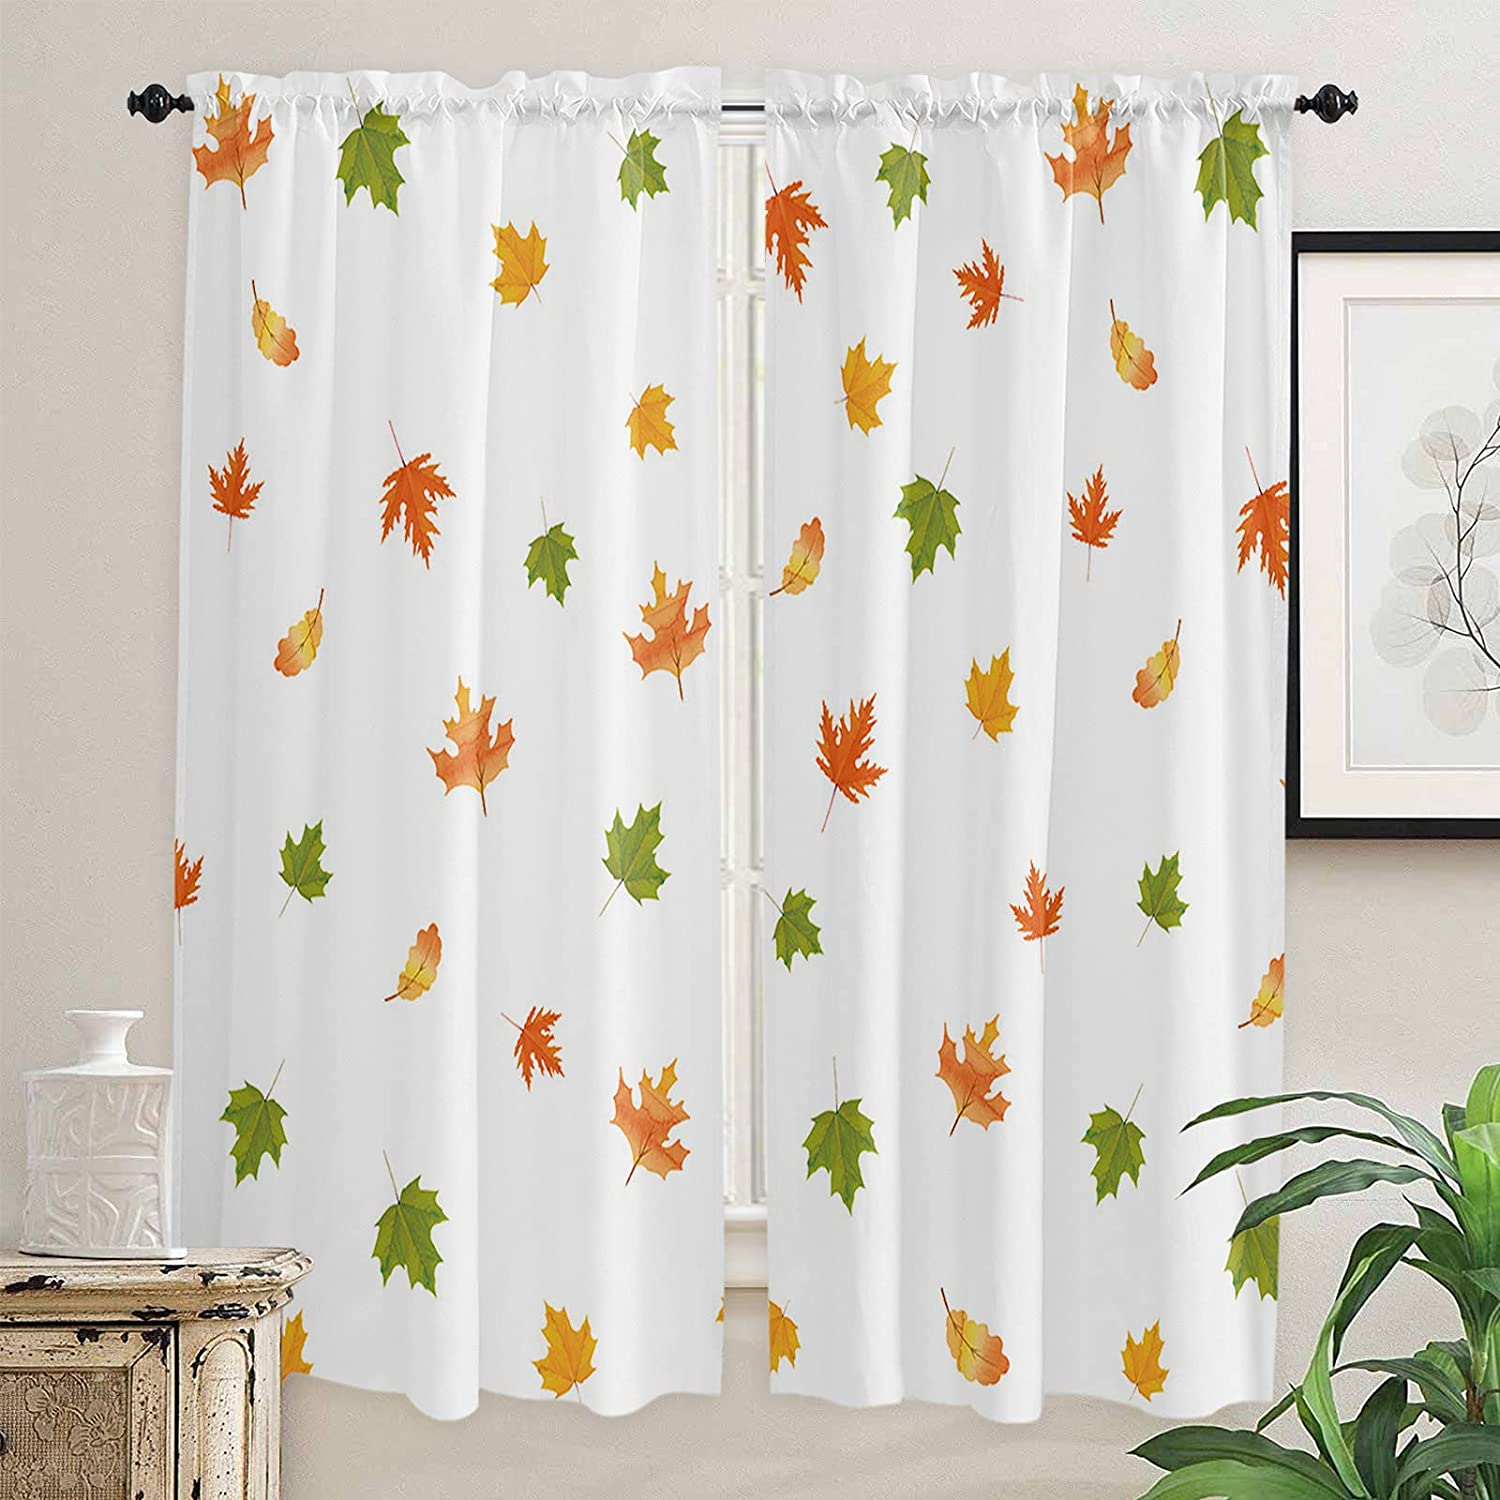 Falling Maple Leave Kitchen Curtains 72 for Fashion Tucson Mall Length Windows Inch